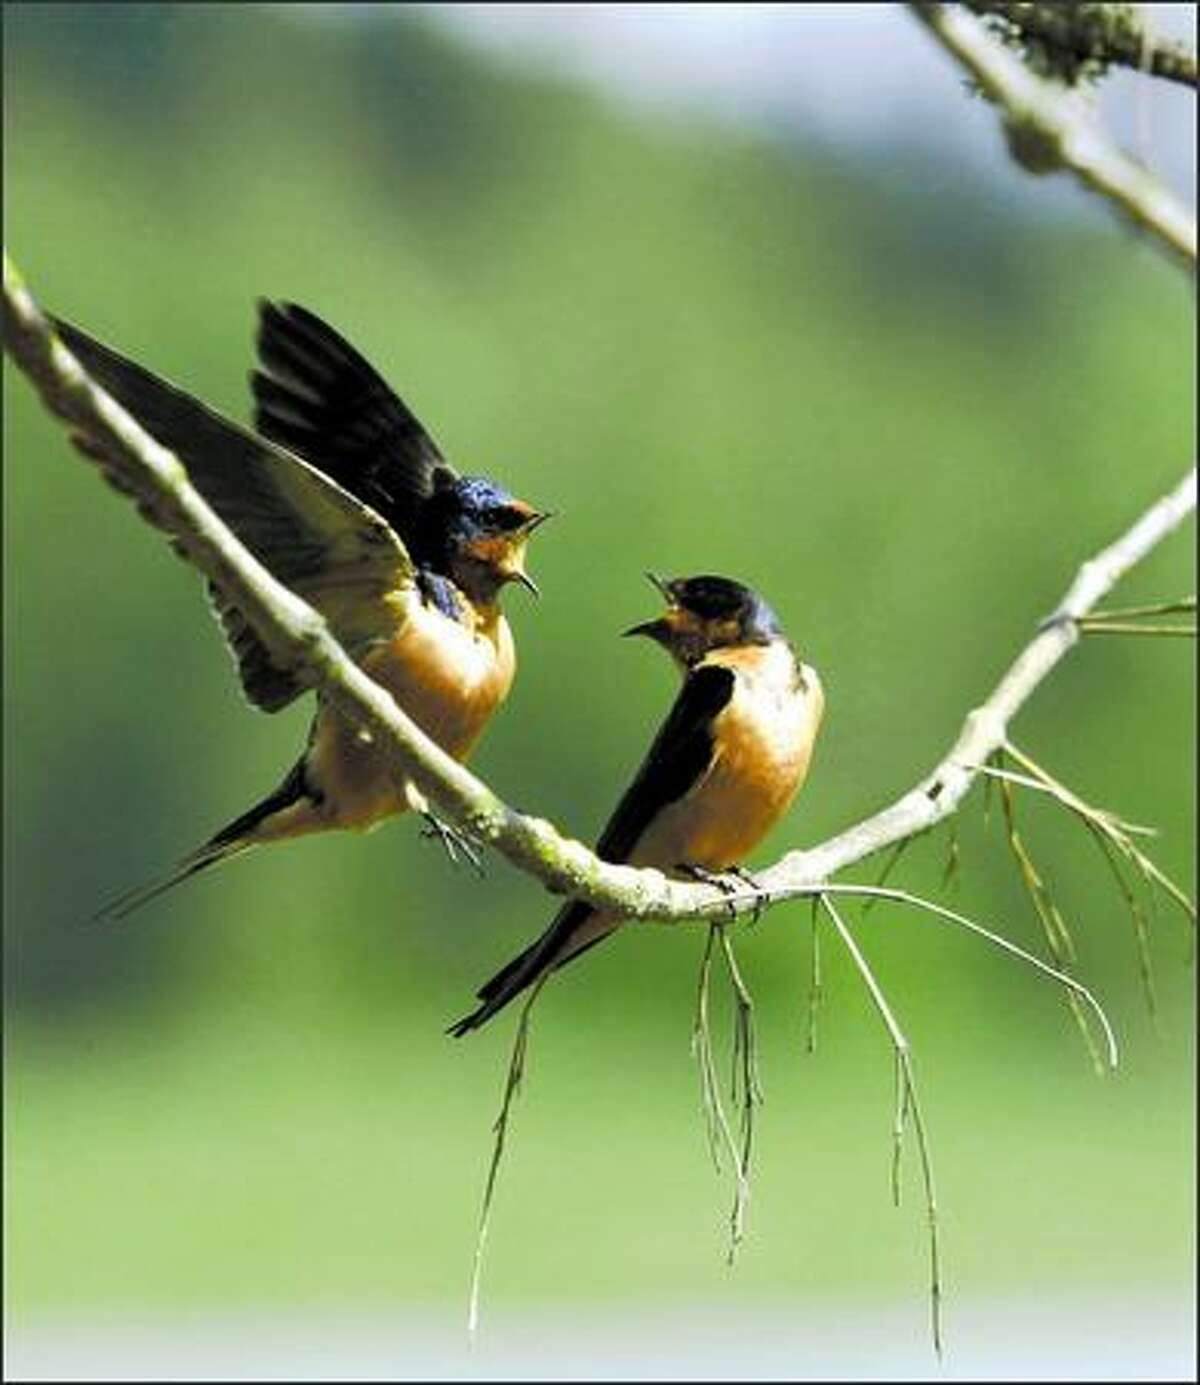 A pair of barn swallows get chatty in the River S Unit of the Ridgefield National Wildlife Refuge. The River S Unit offers a 4.2-mile auto tour route for birders as well as trails.